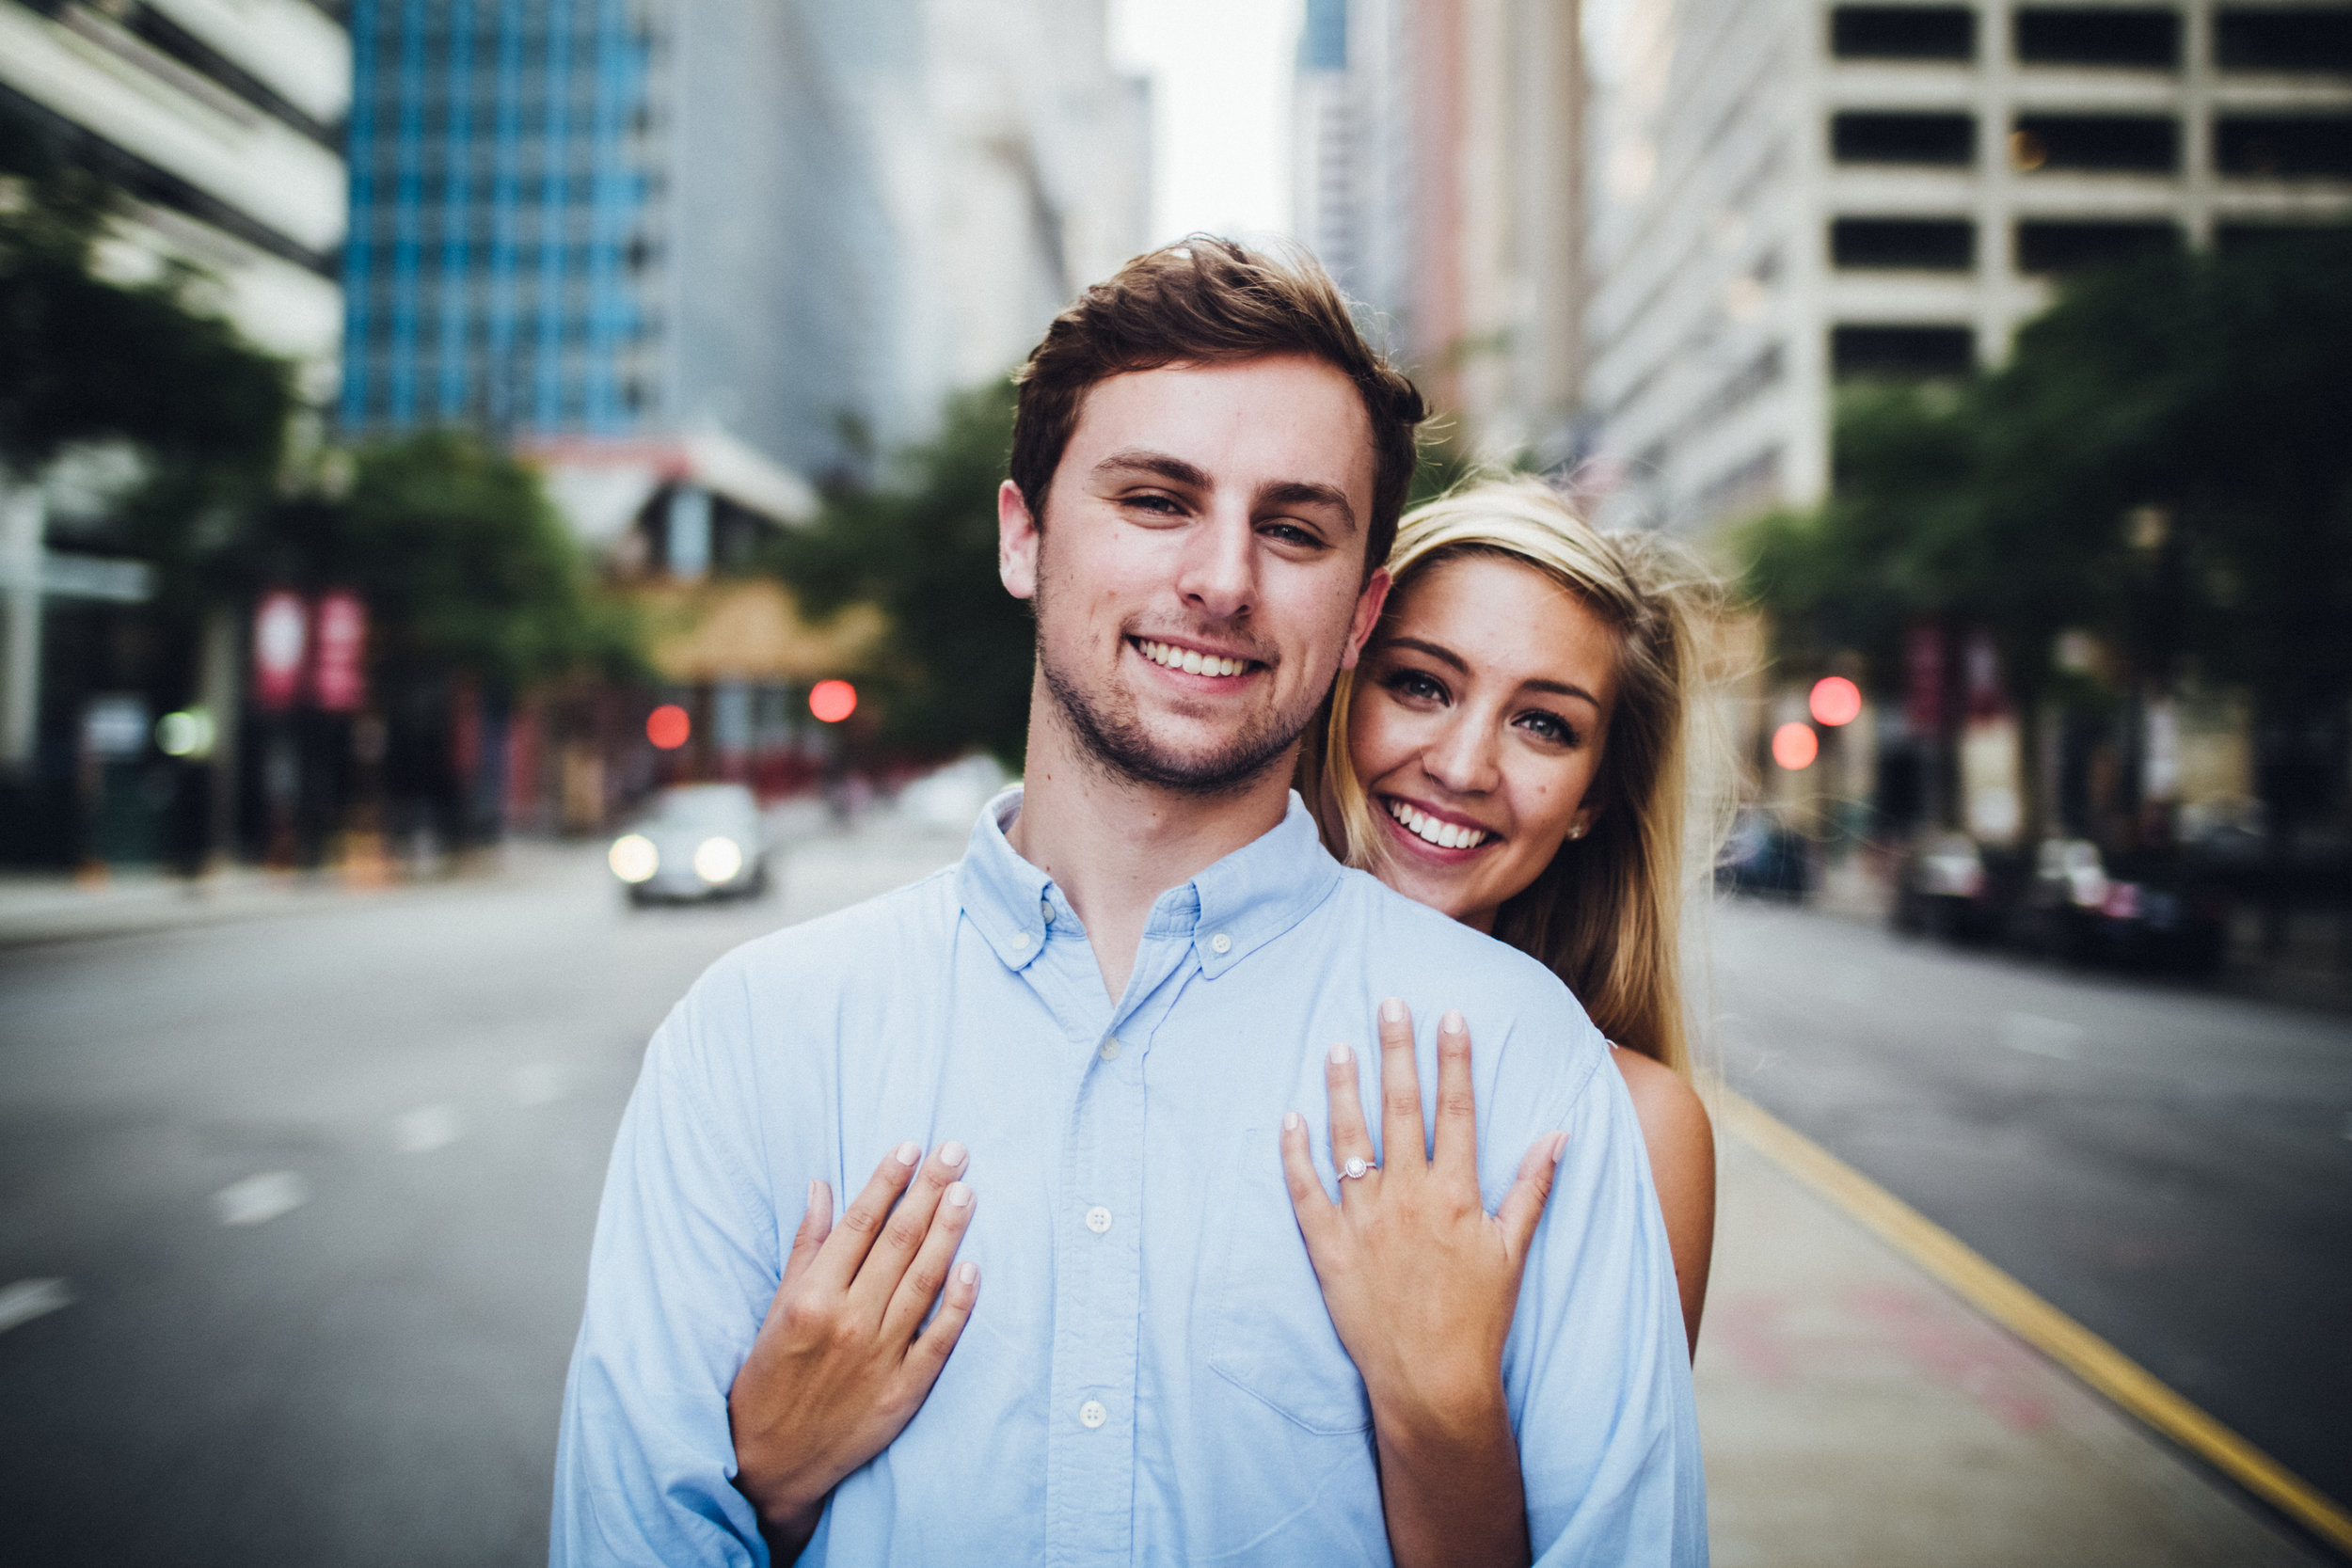 anna-bryce-destination-wedding-illionis-shadow-shine-pictures-engagement-photography-photographers-photographer